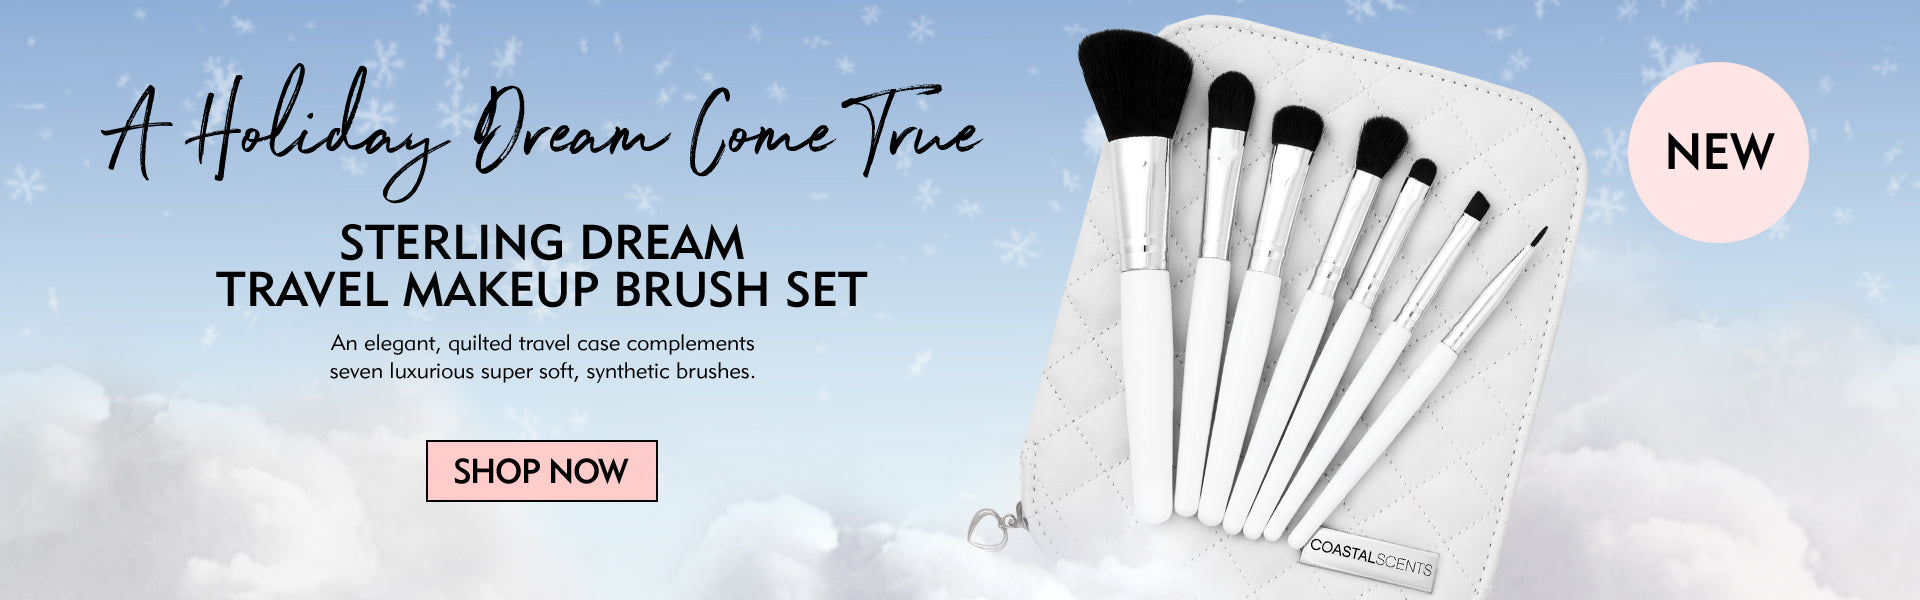 Sterling Dream Travel Makeup Brush Set- An elegant quilted travel case complements seven luxurious super soft synthetic brushes.